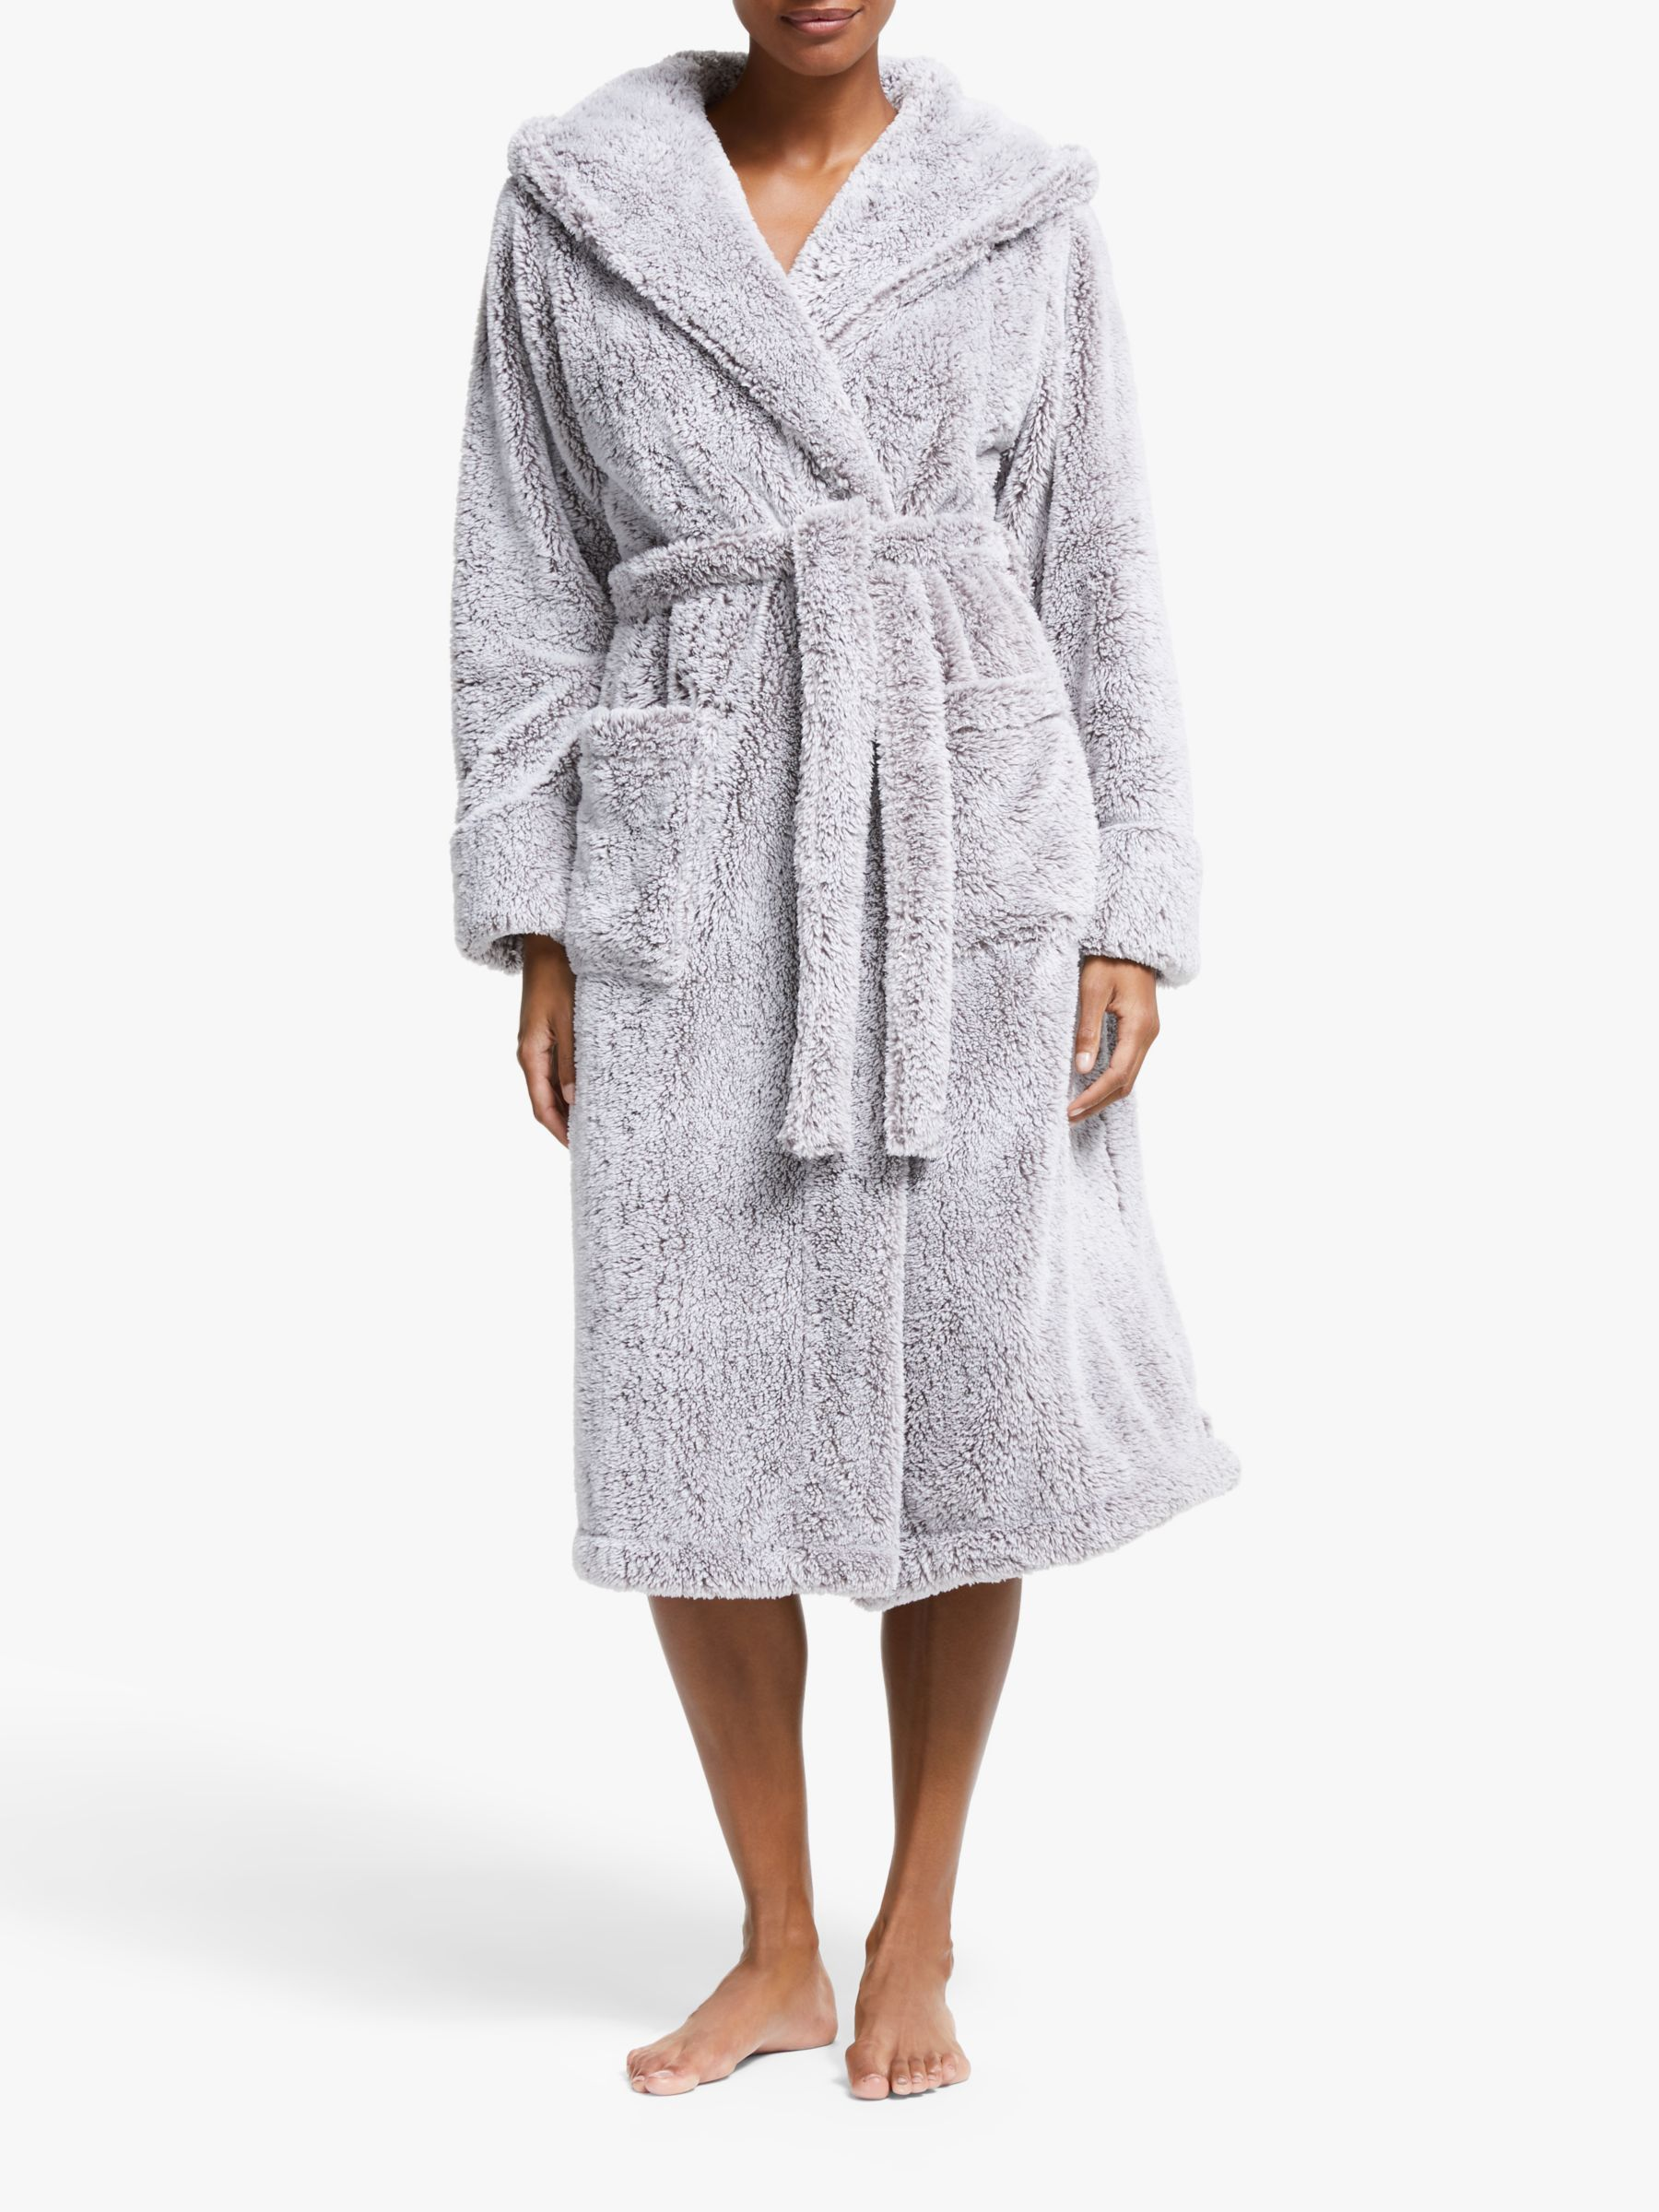 Robes Dressing Gowns John Lewis Partners